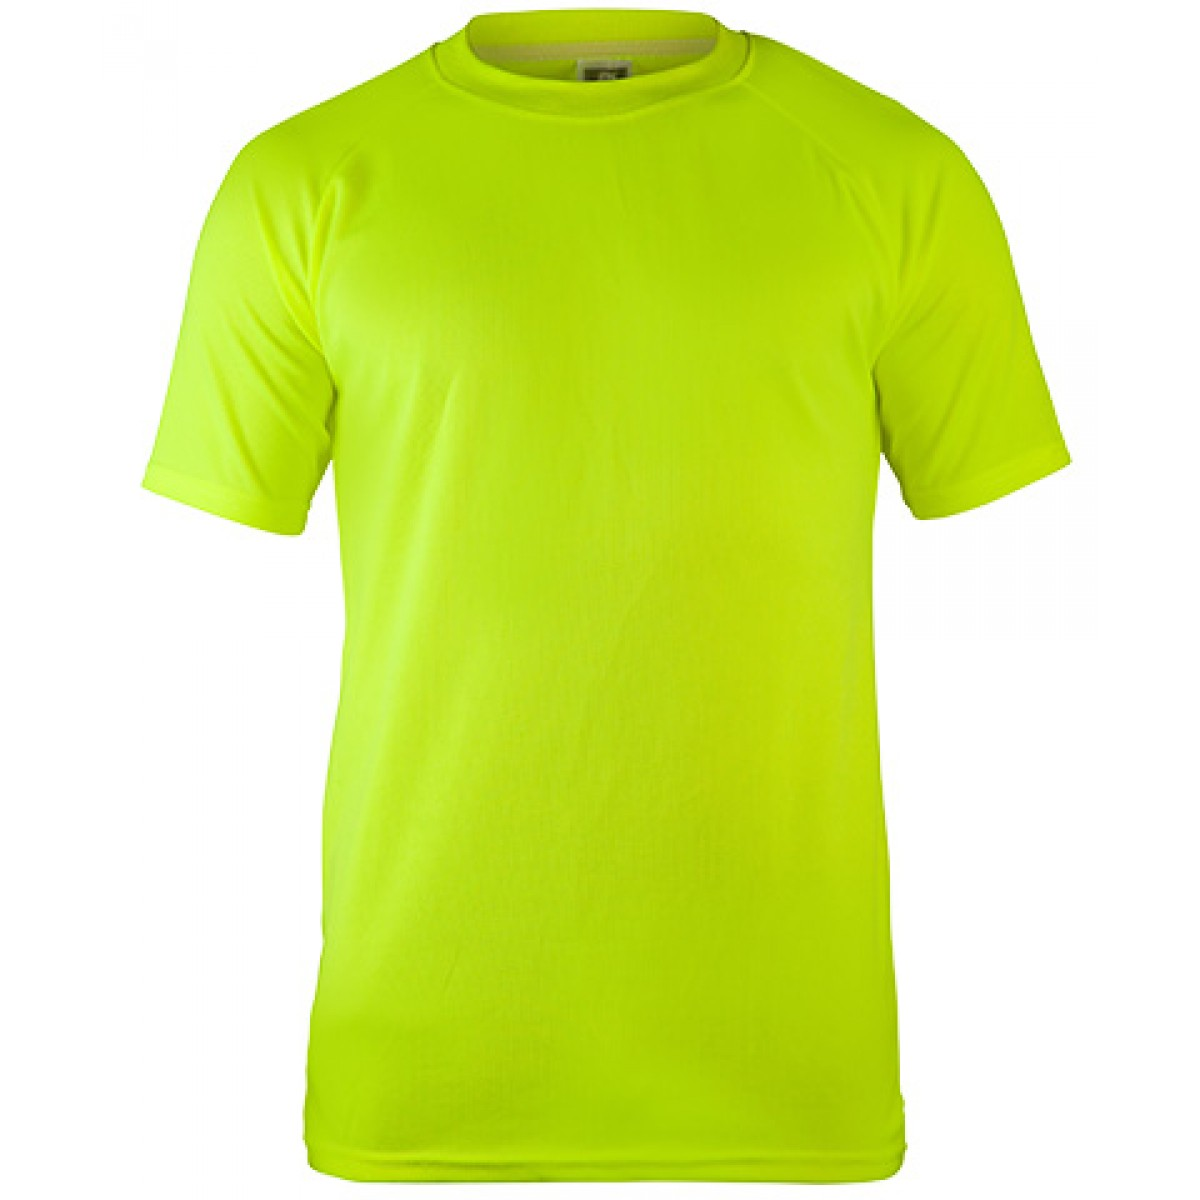 Performance T-shirt-Safety Green-YL